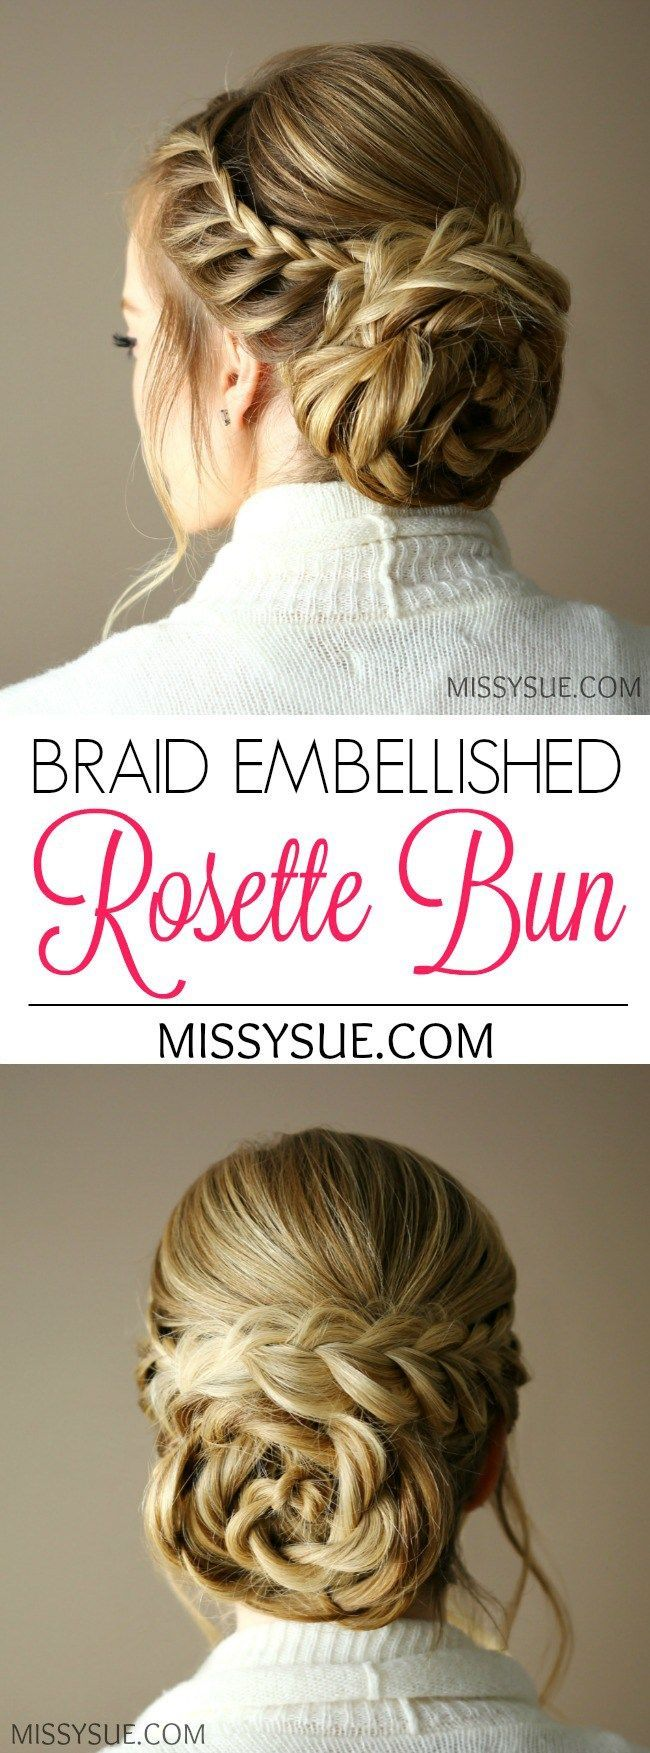 This Braid Embellished Rosette Bun is so fairly and feminine you will feel like a princess or queen wearing it.